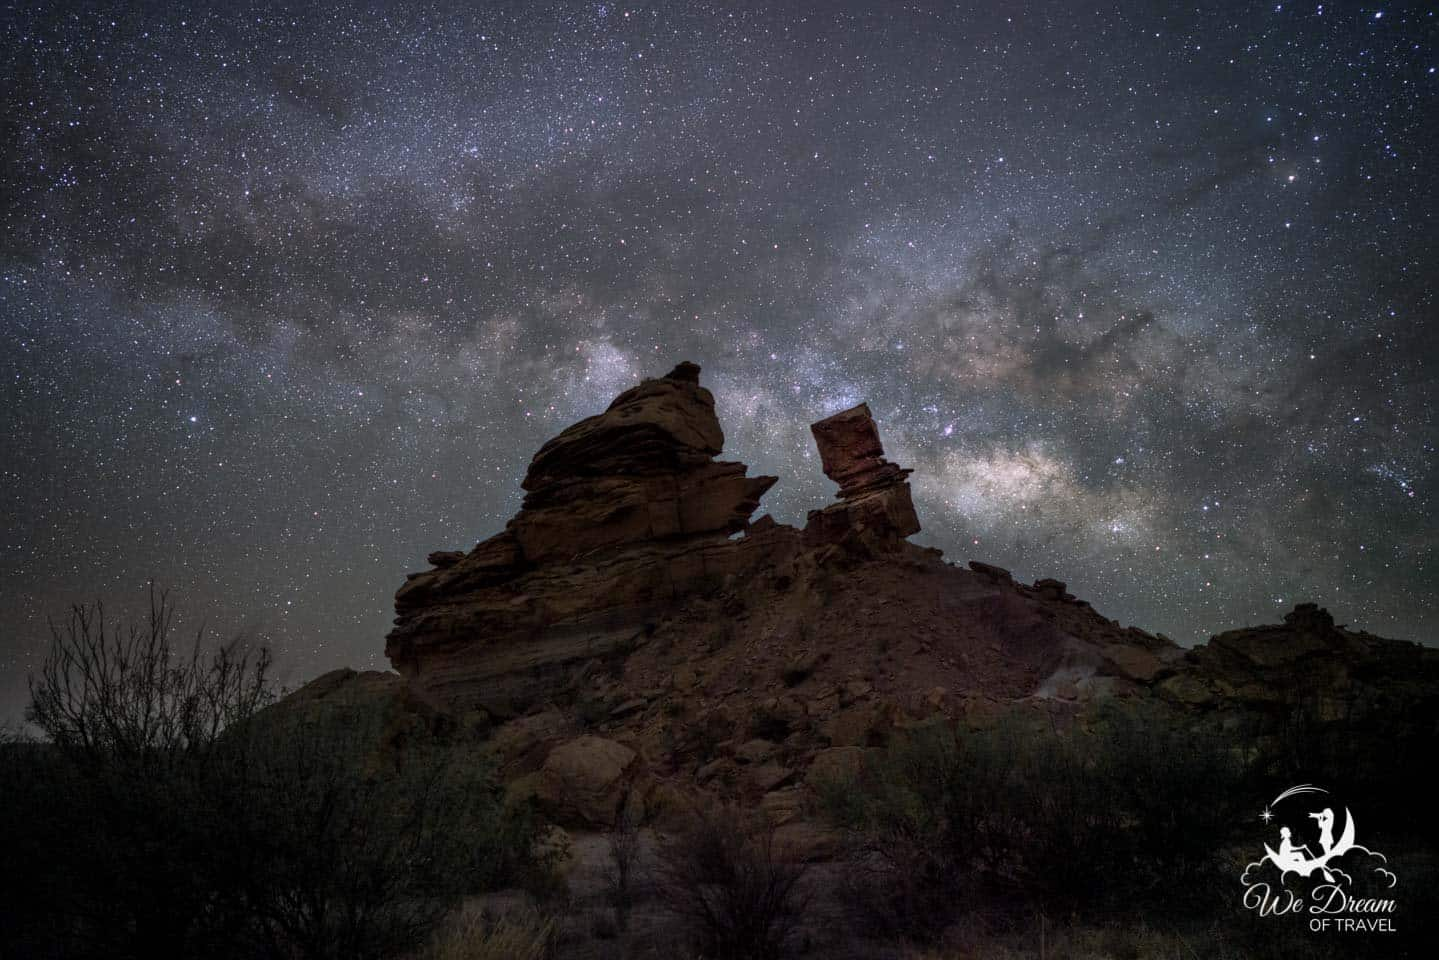 Milky Way photography from Big Bend featuring the hoodoos of Exhibit Ridge.